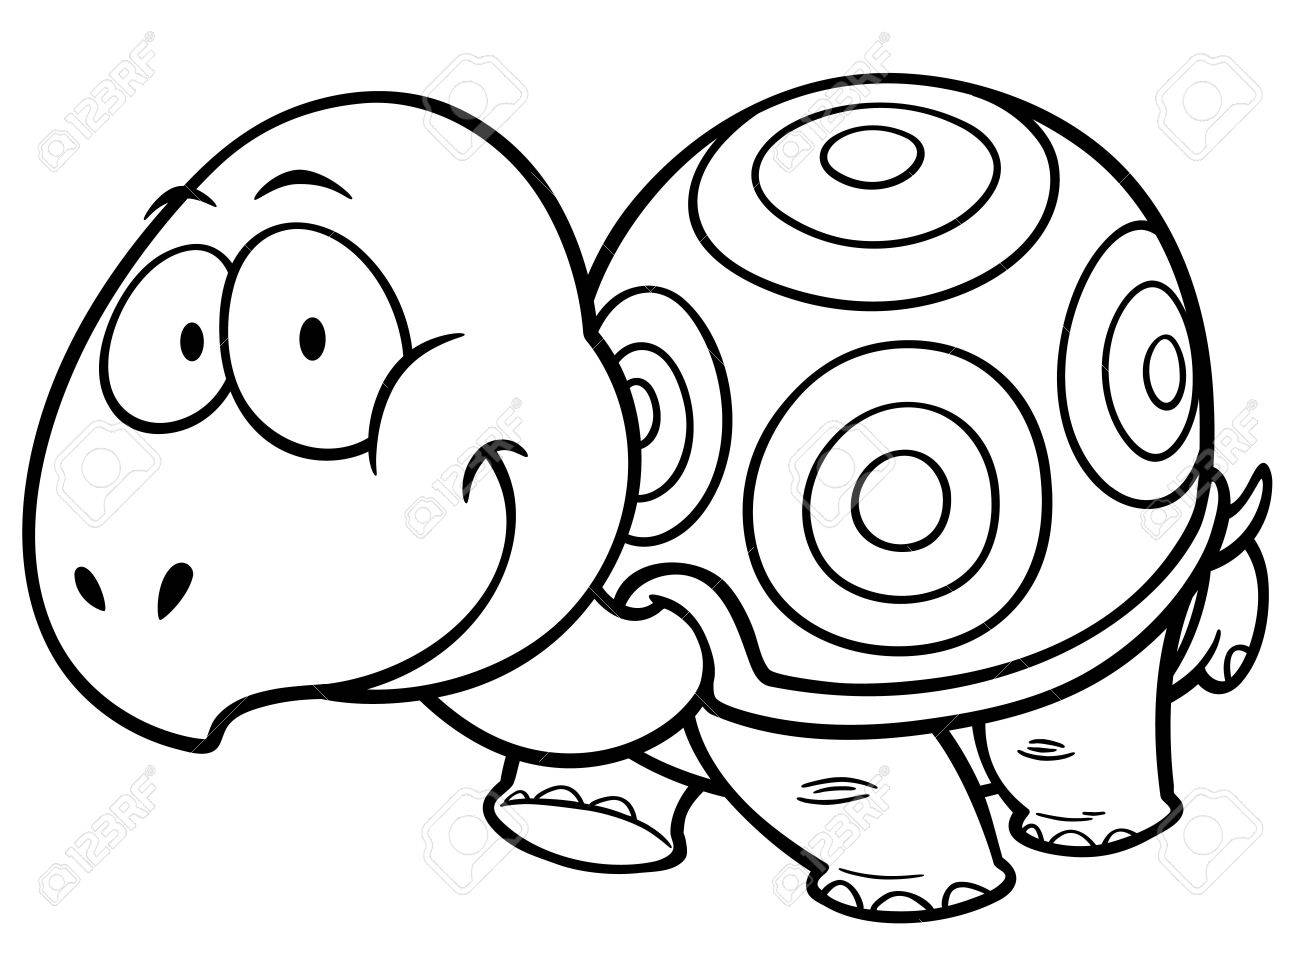 Vector Illustration Of Cartoon Turtle - Coloring Book Royalty Free ...